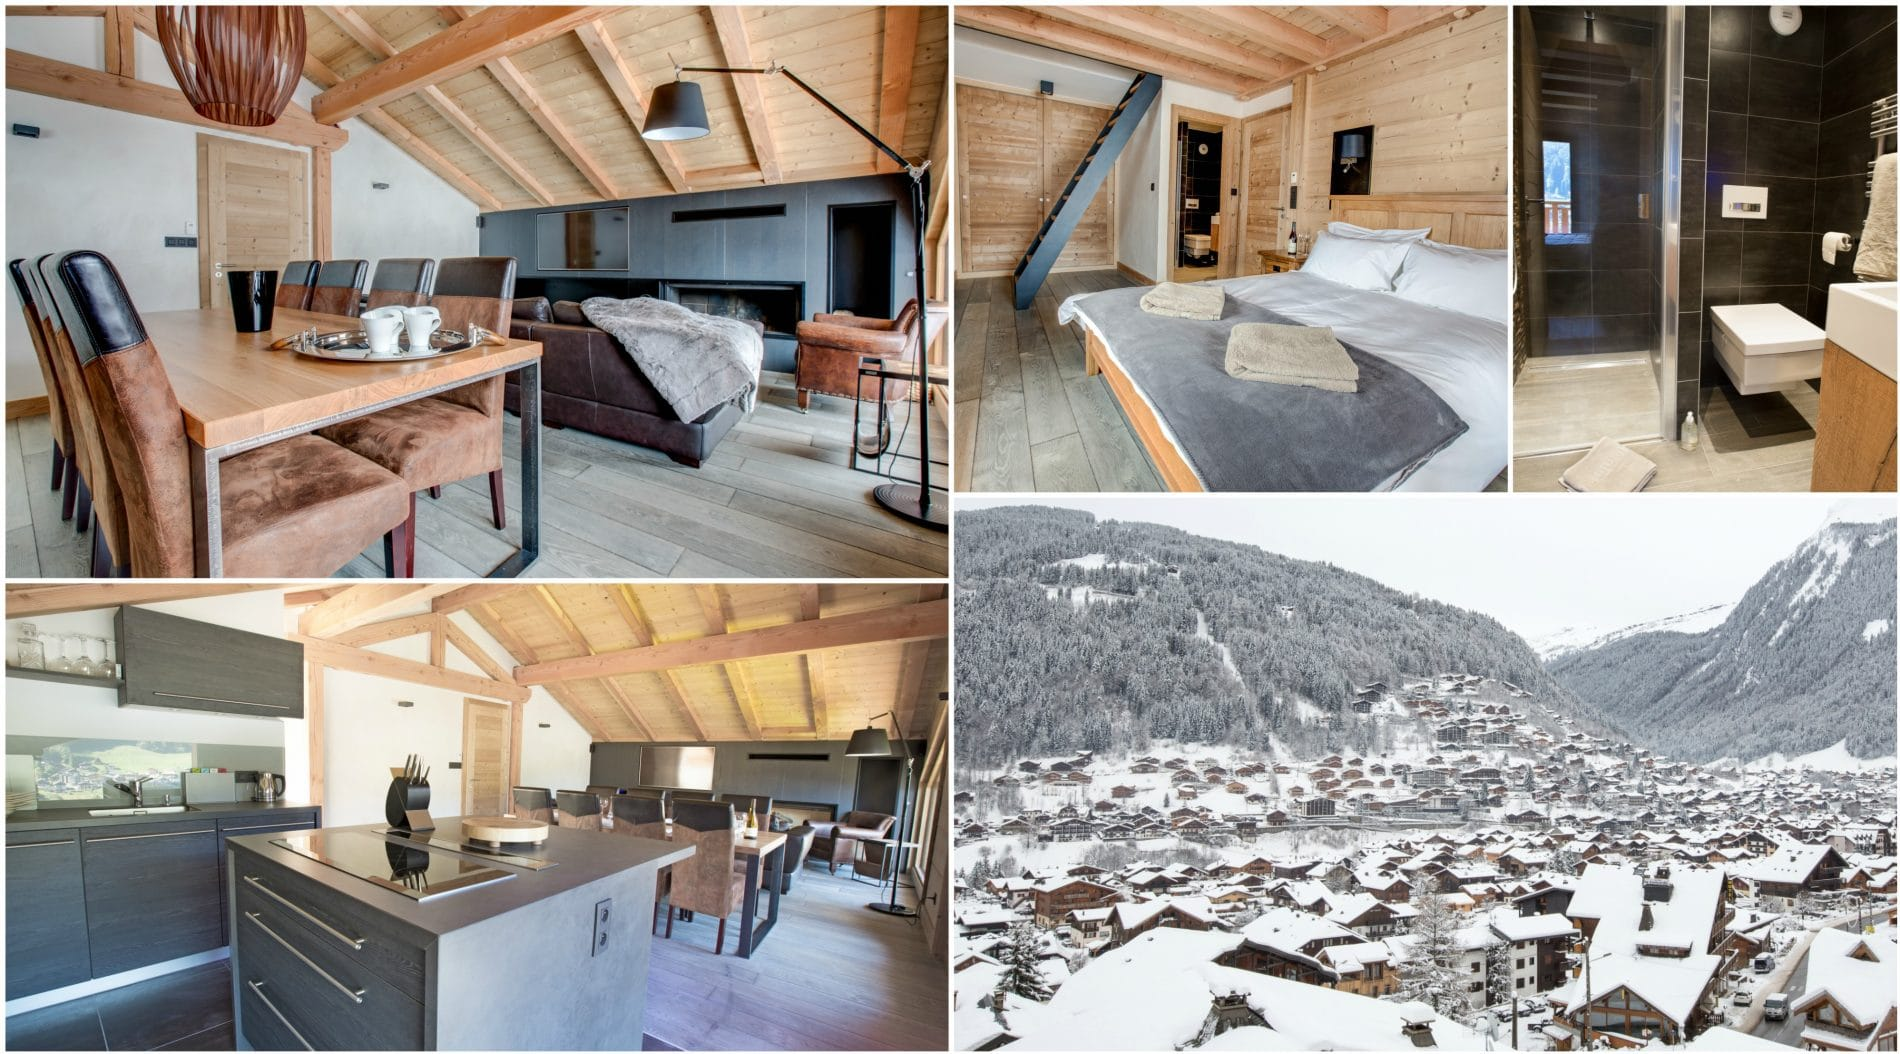 Chalet L Elegante Luxury Ski Sleeps 9 In 4 Ensuite Bedrooms And Is 5 Metres From The Free Hop On Bus That Takes You Directly To Pleney